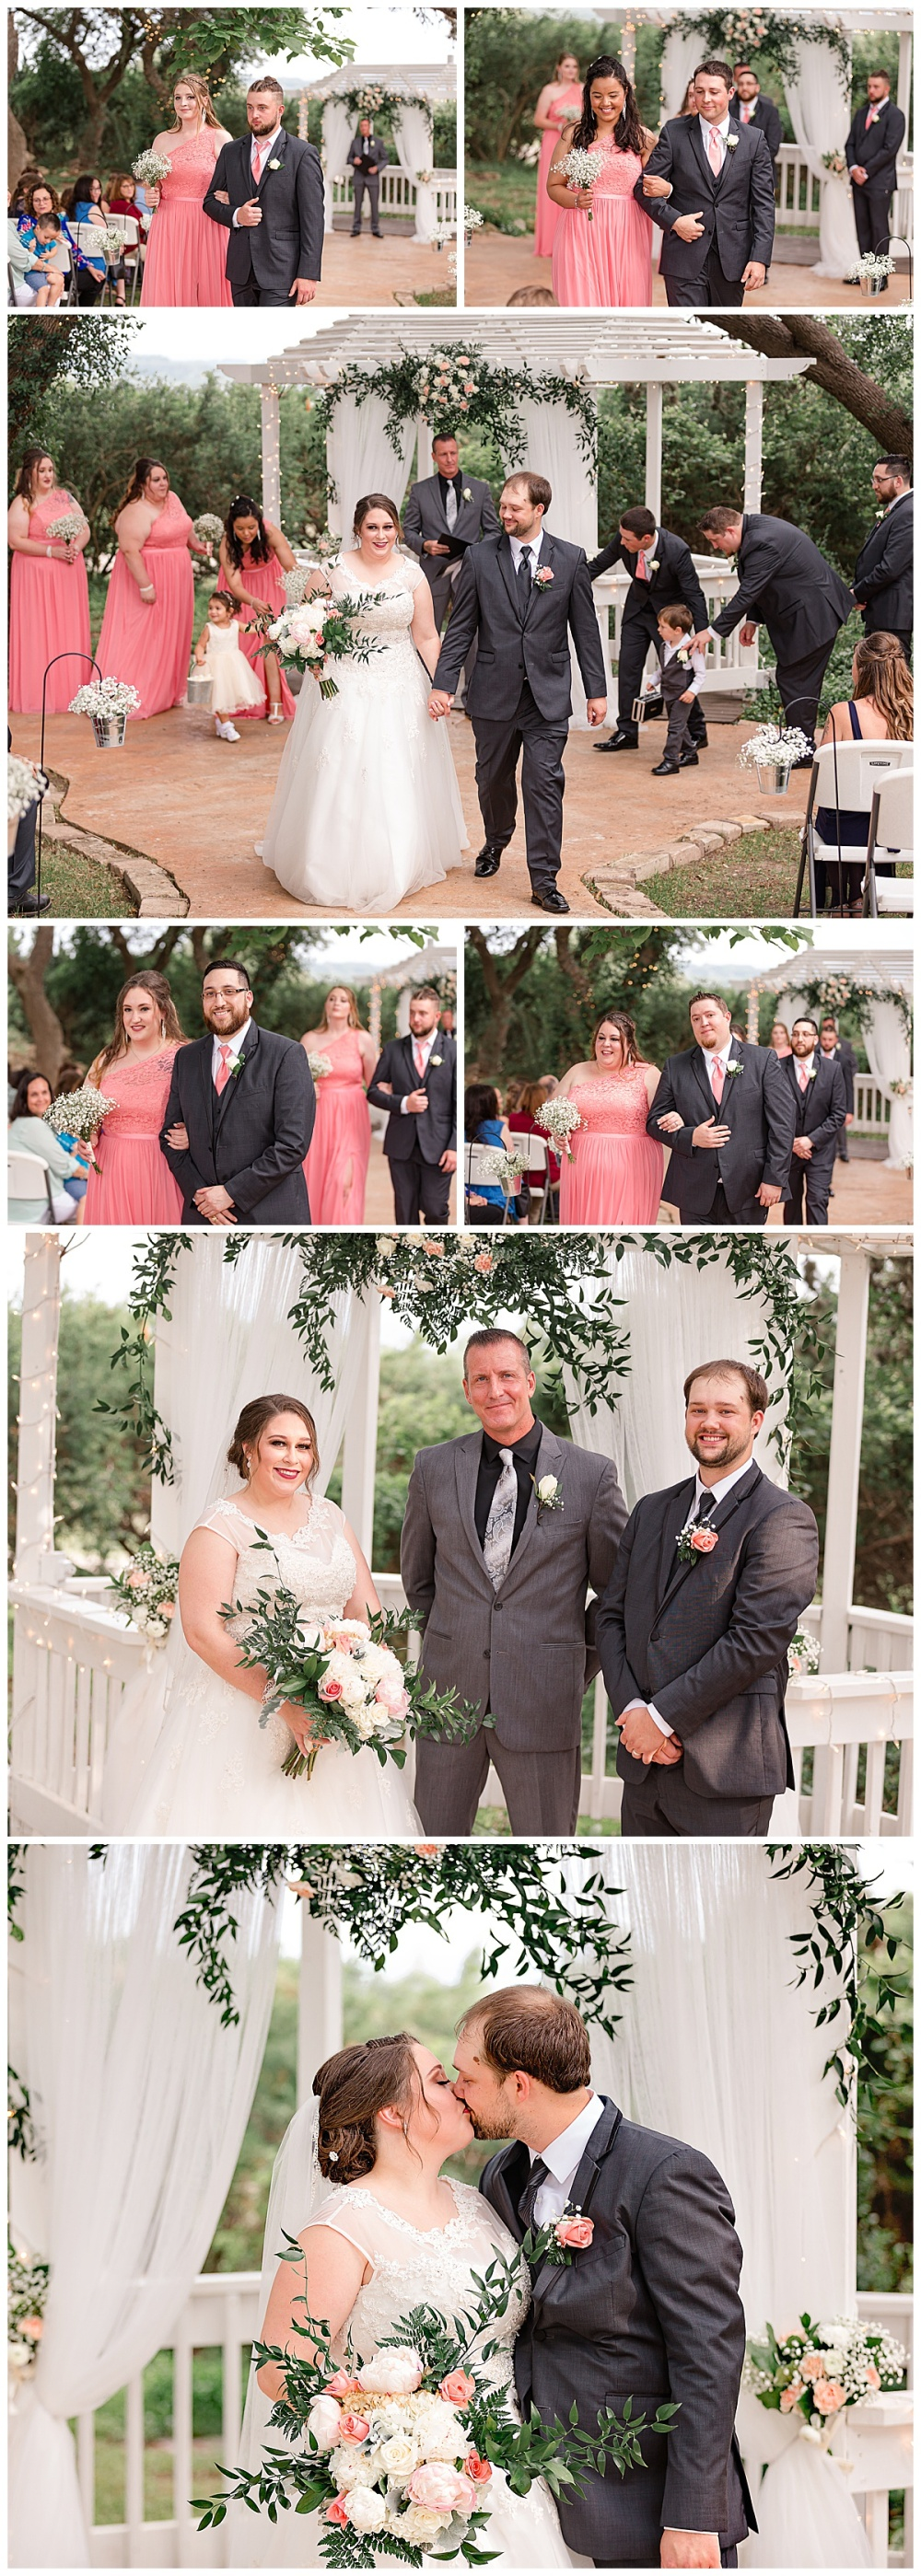 Michael-Tiffany-Wedding-New-Braunfels-Texas-Canyon-Lake-Cabins-and-Cottages-Carly-Barton-Photography_0025.jpg